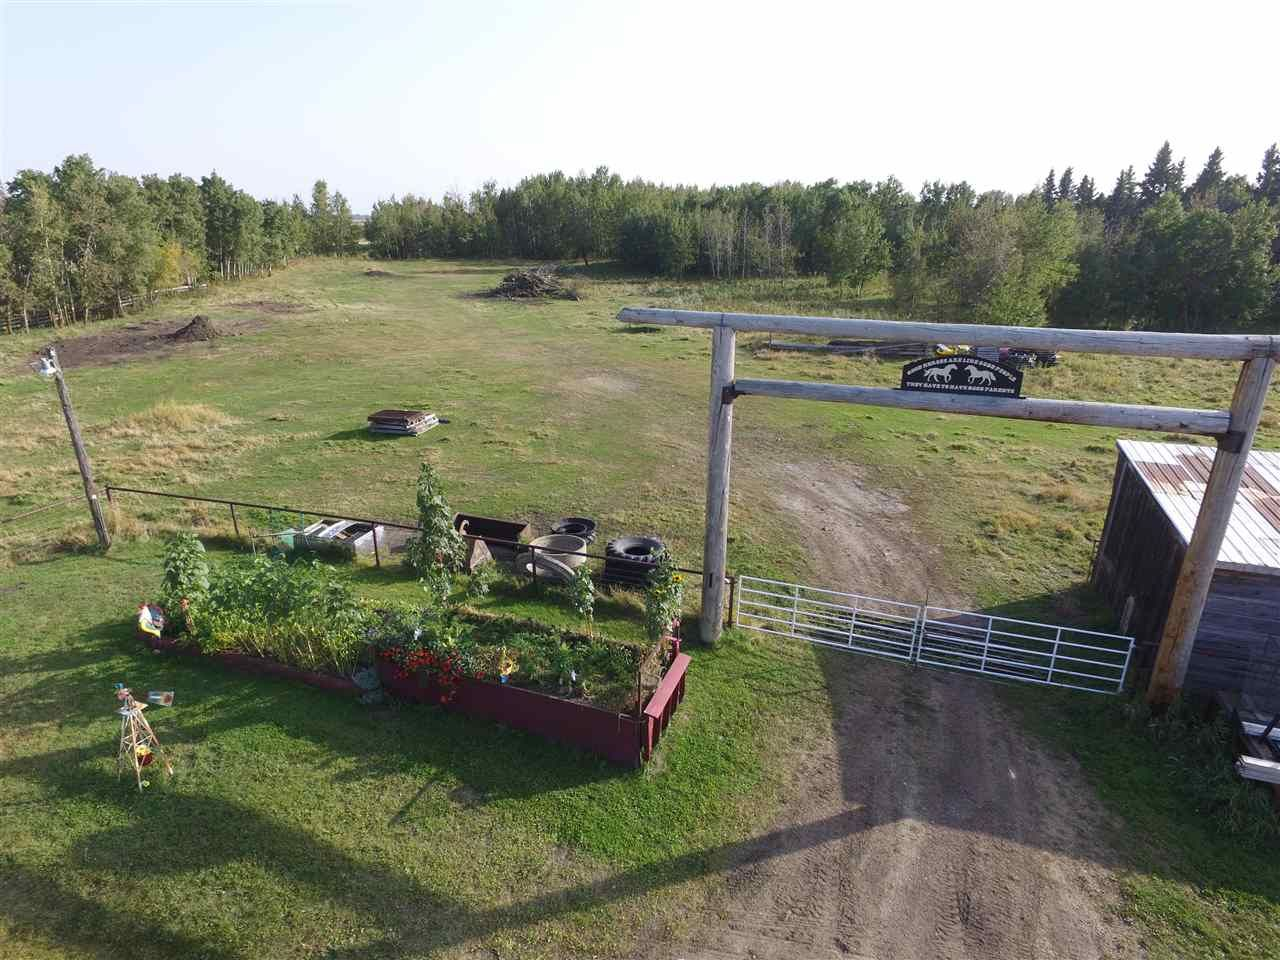 Photo 6: Photos: 472050A Hwy 814: Rural Wetaskiwin County House for sale : MLS®# E4213442